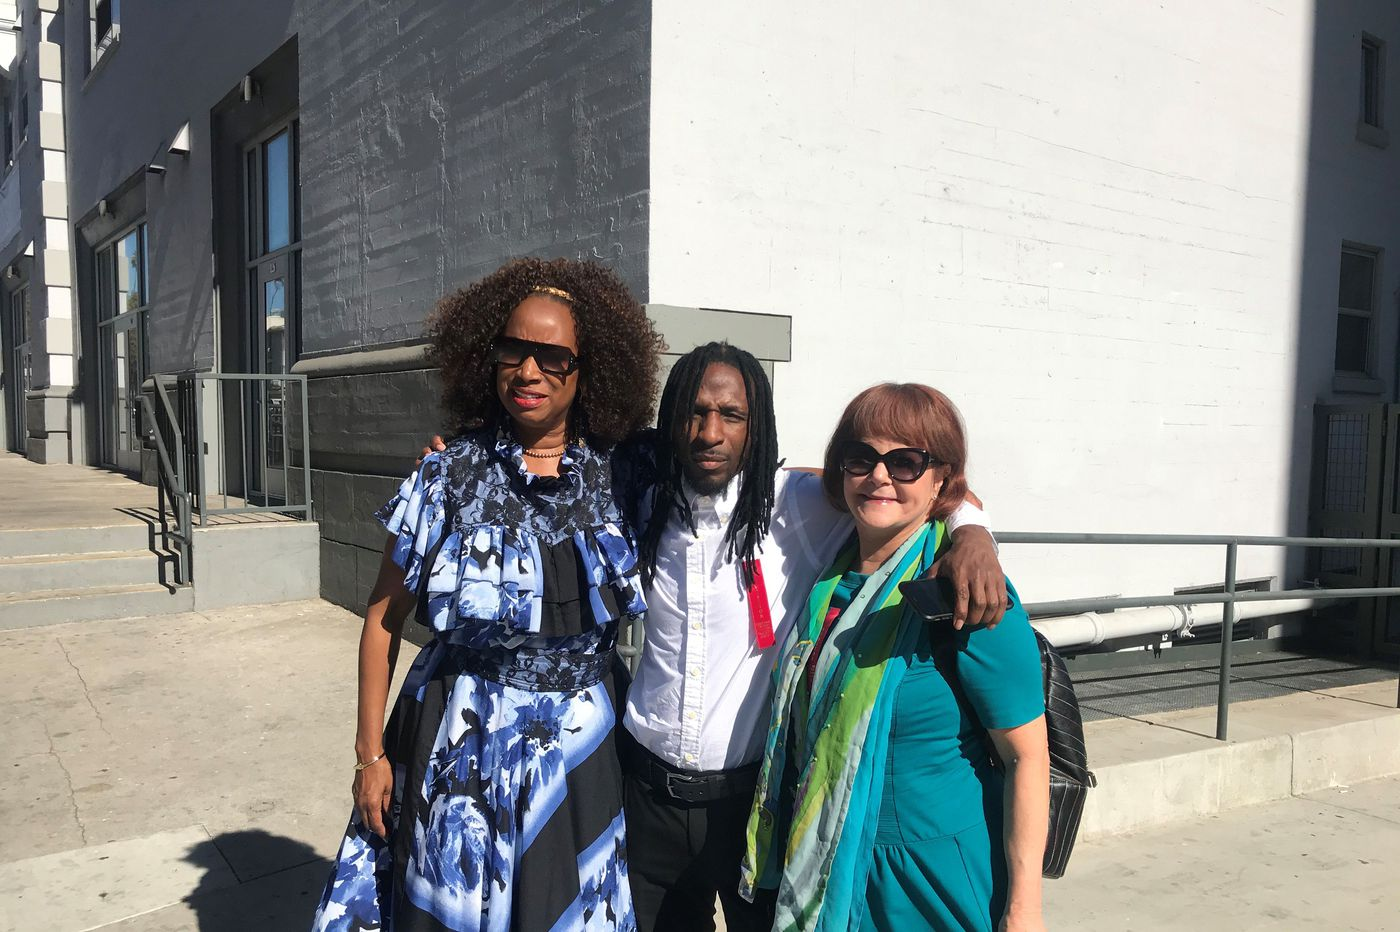 He represented himself in a murder retrial, and won. A year later, he's helping others with criminal cases.